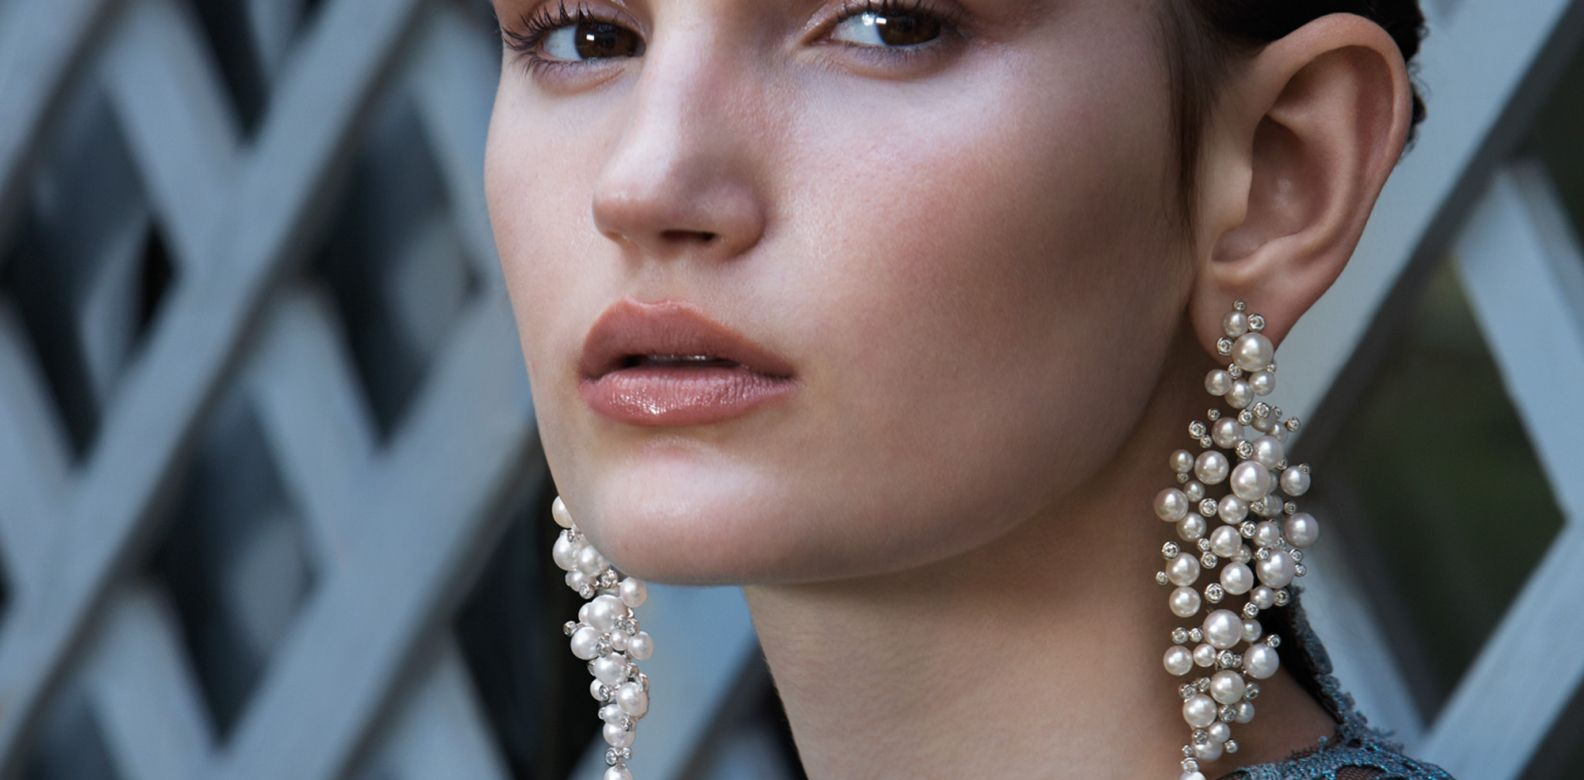 Perles Givrées earrings in white gold set with pearls and diamonds, by Boucheron; dress by Valentino